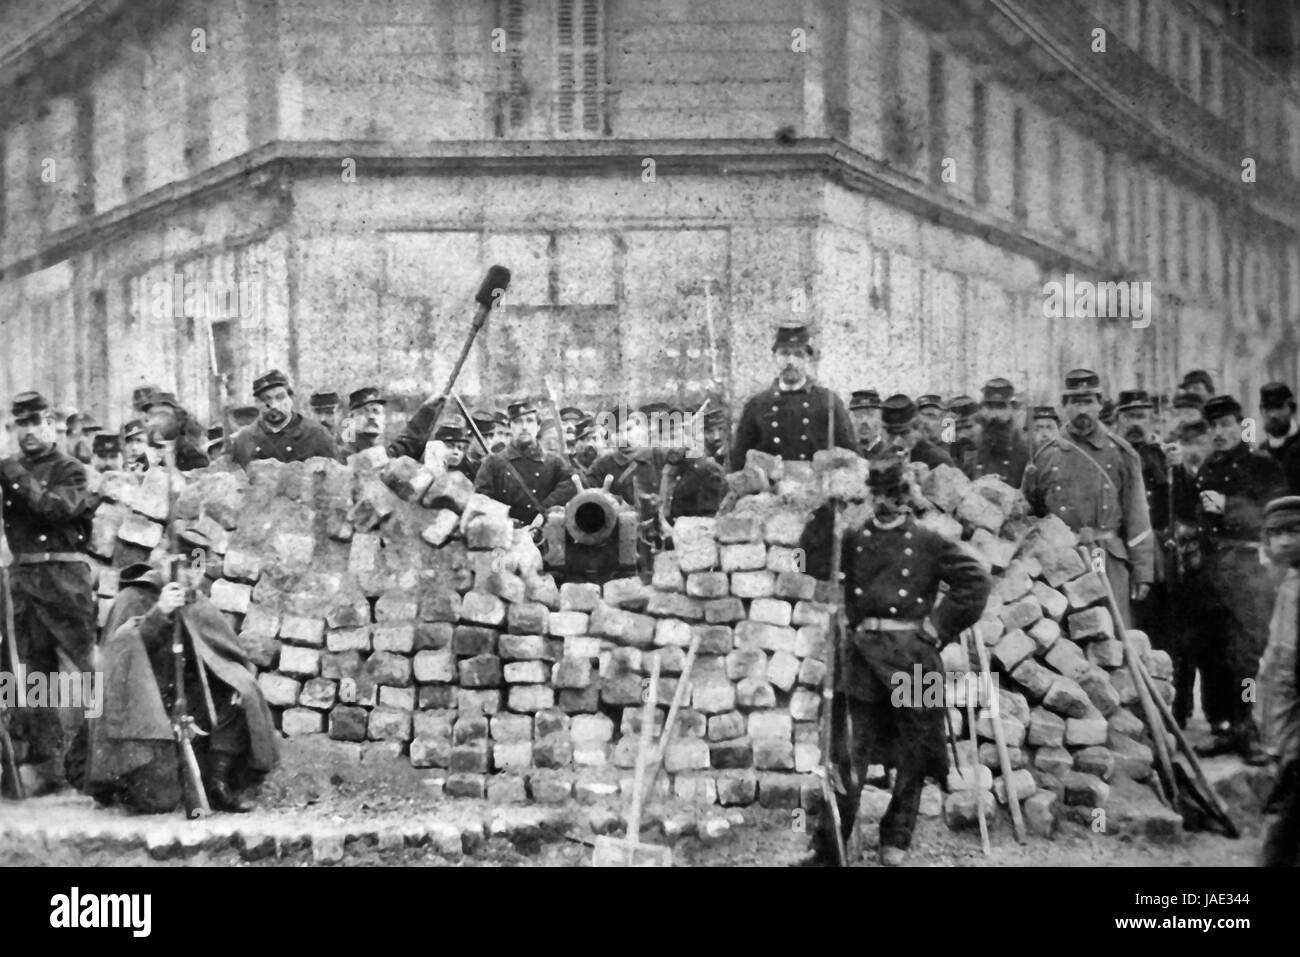 Barricade at the corner of Boulevard Voltaire and Richard-Lenoir during the Paris Commune of 1871. - Stock Image